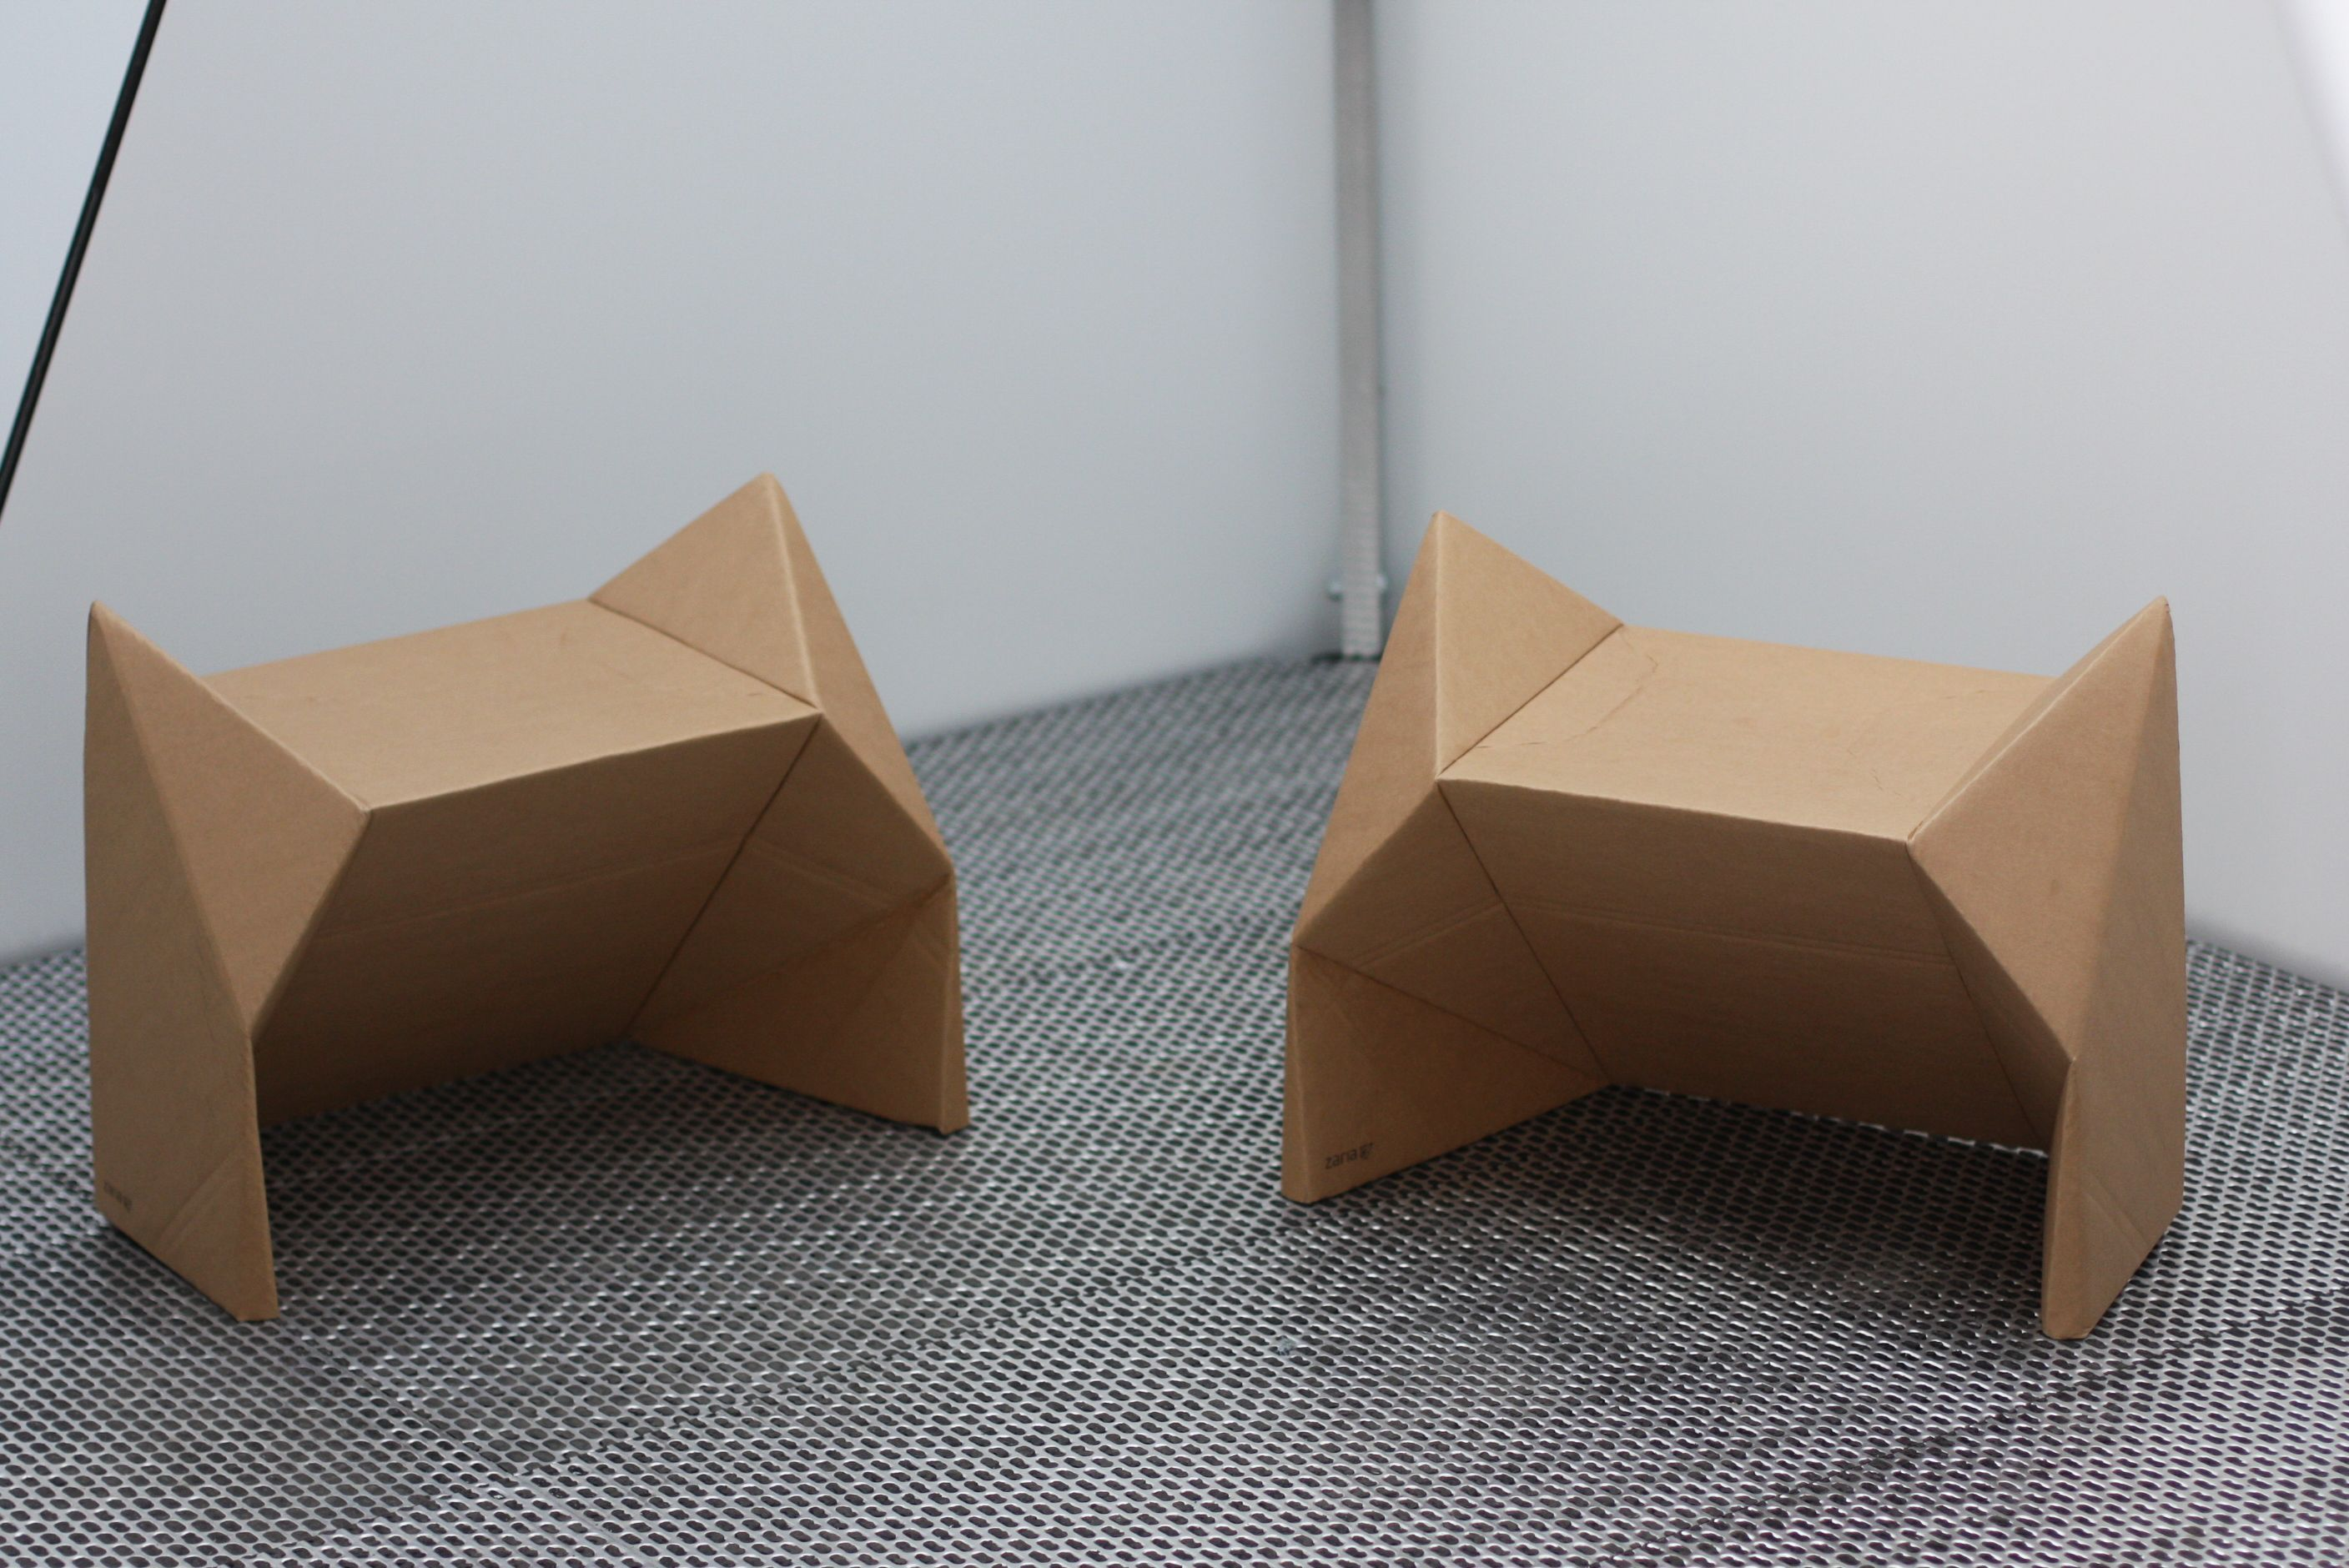 cardboard-furniture-dmy-berlin-zaria.jpg (2816×1880)